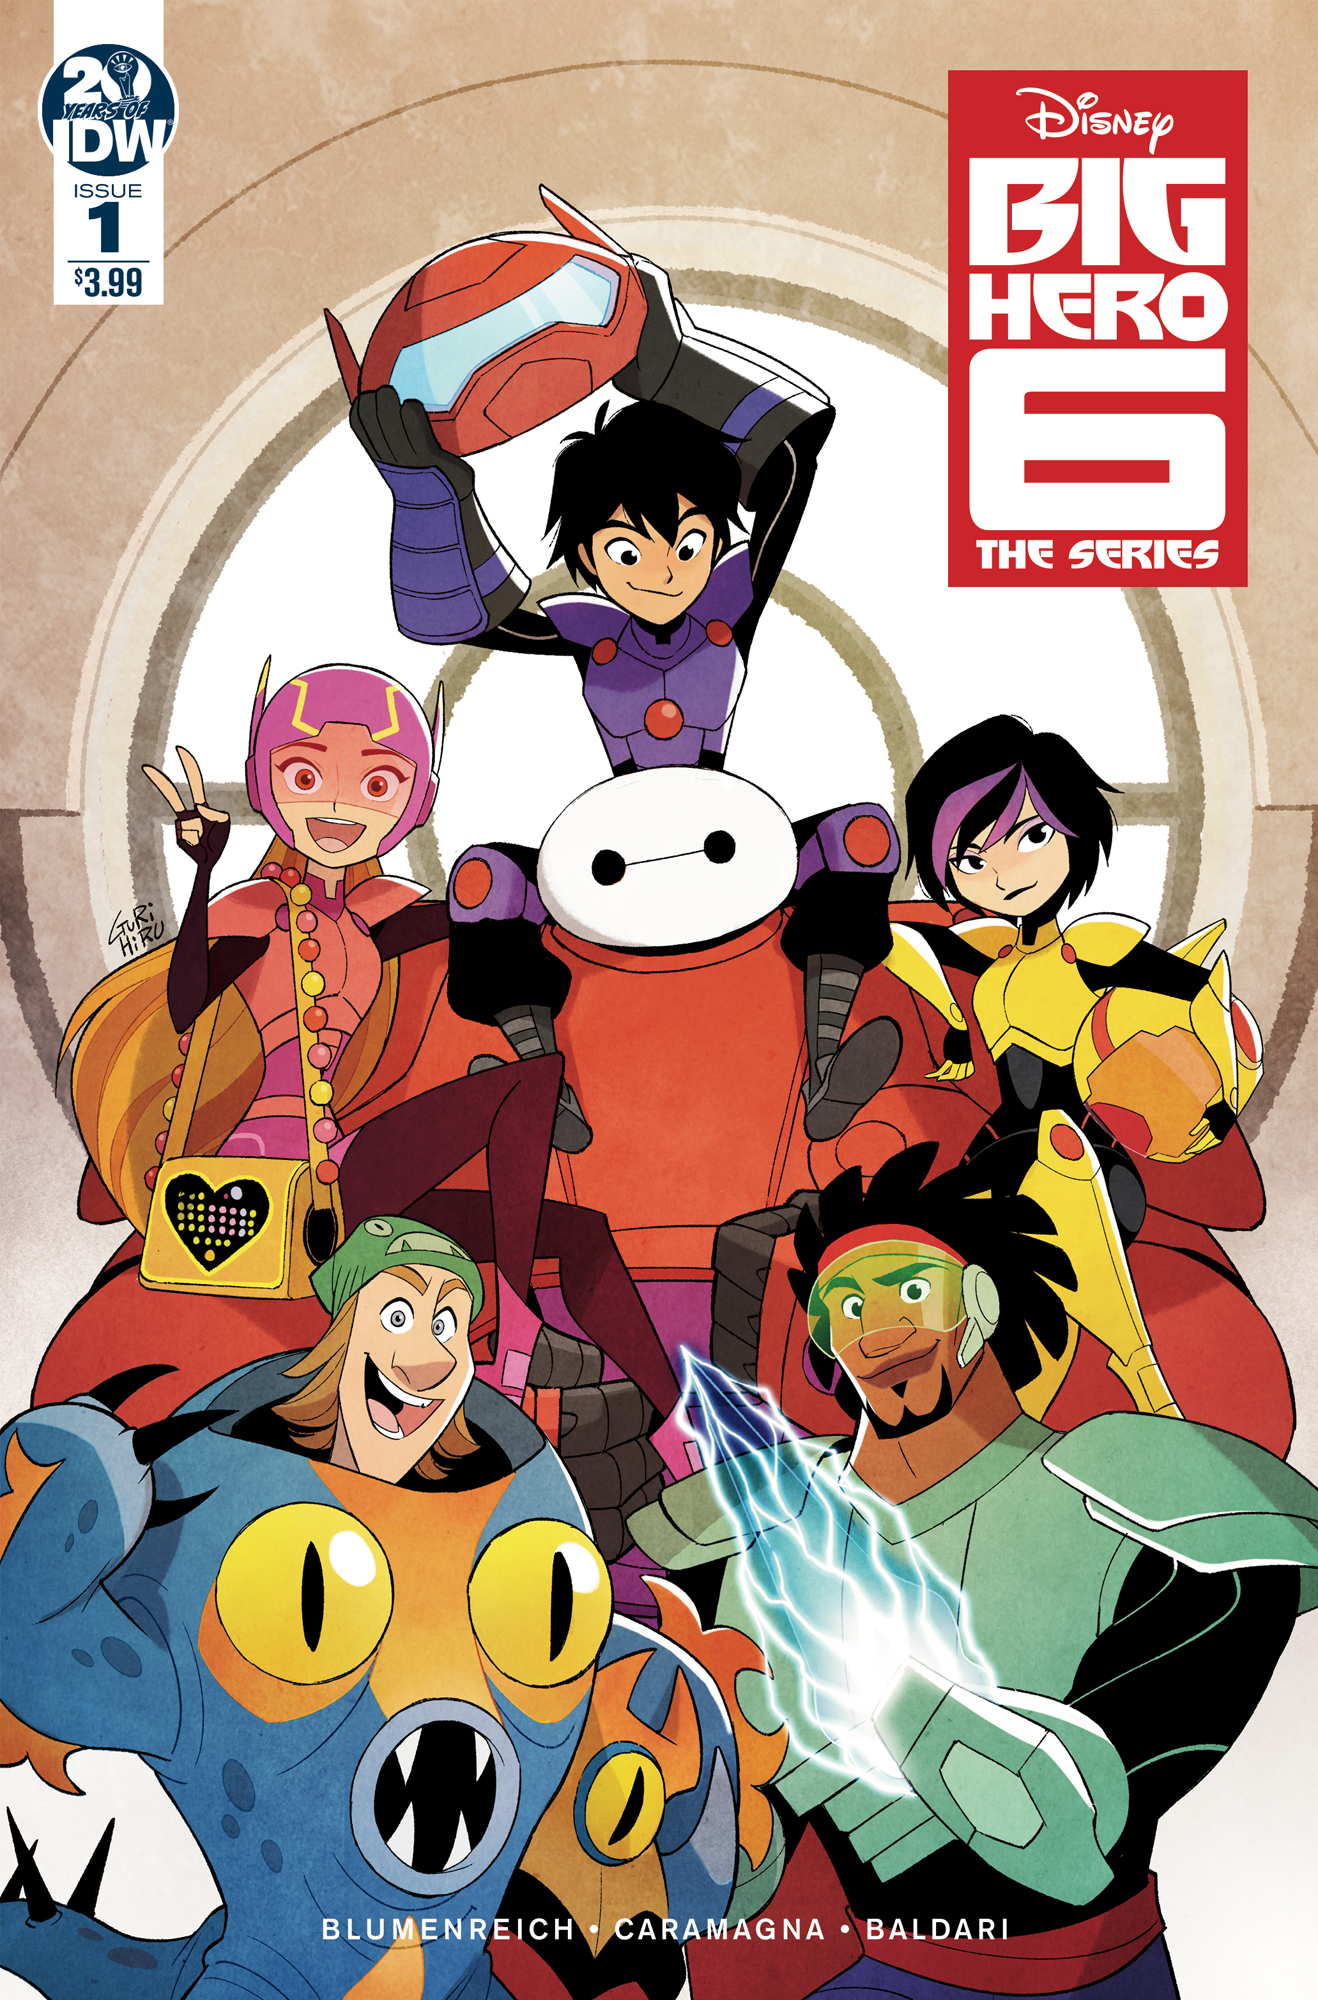 BIG HERO 6 THE SERIES #1 CVR A GURIHIRU (RES)